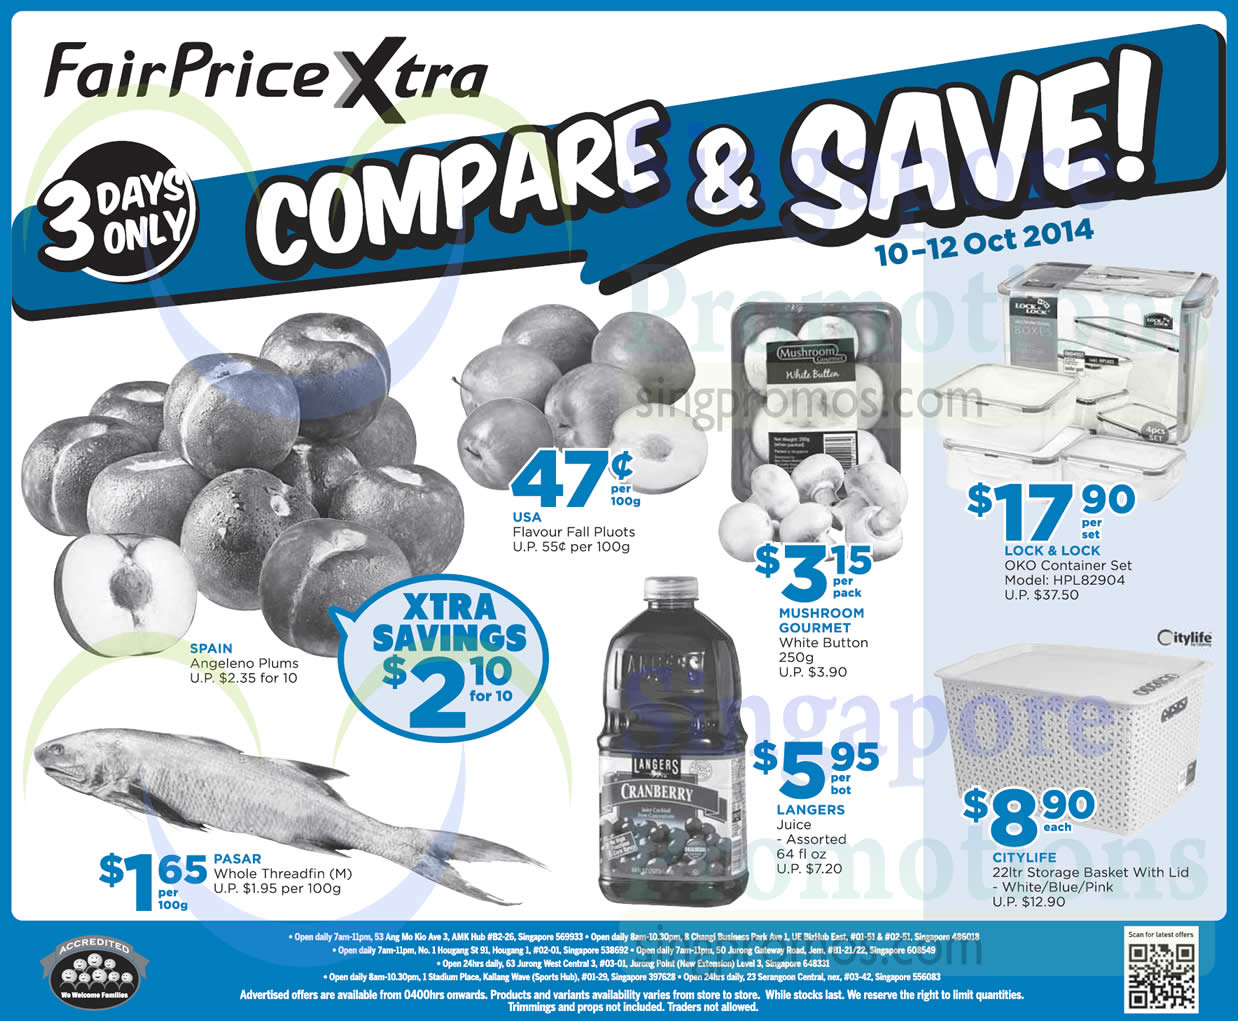 (Till 12 Oct) Compare n Save Fruits, Lock n Lock container Set, Citylife Storage Basket